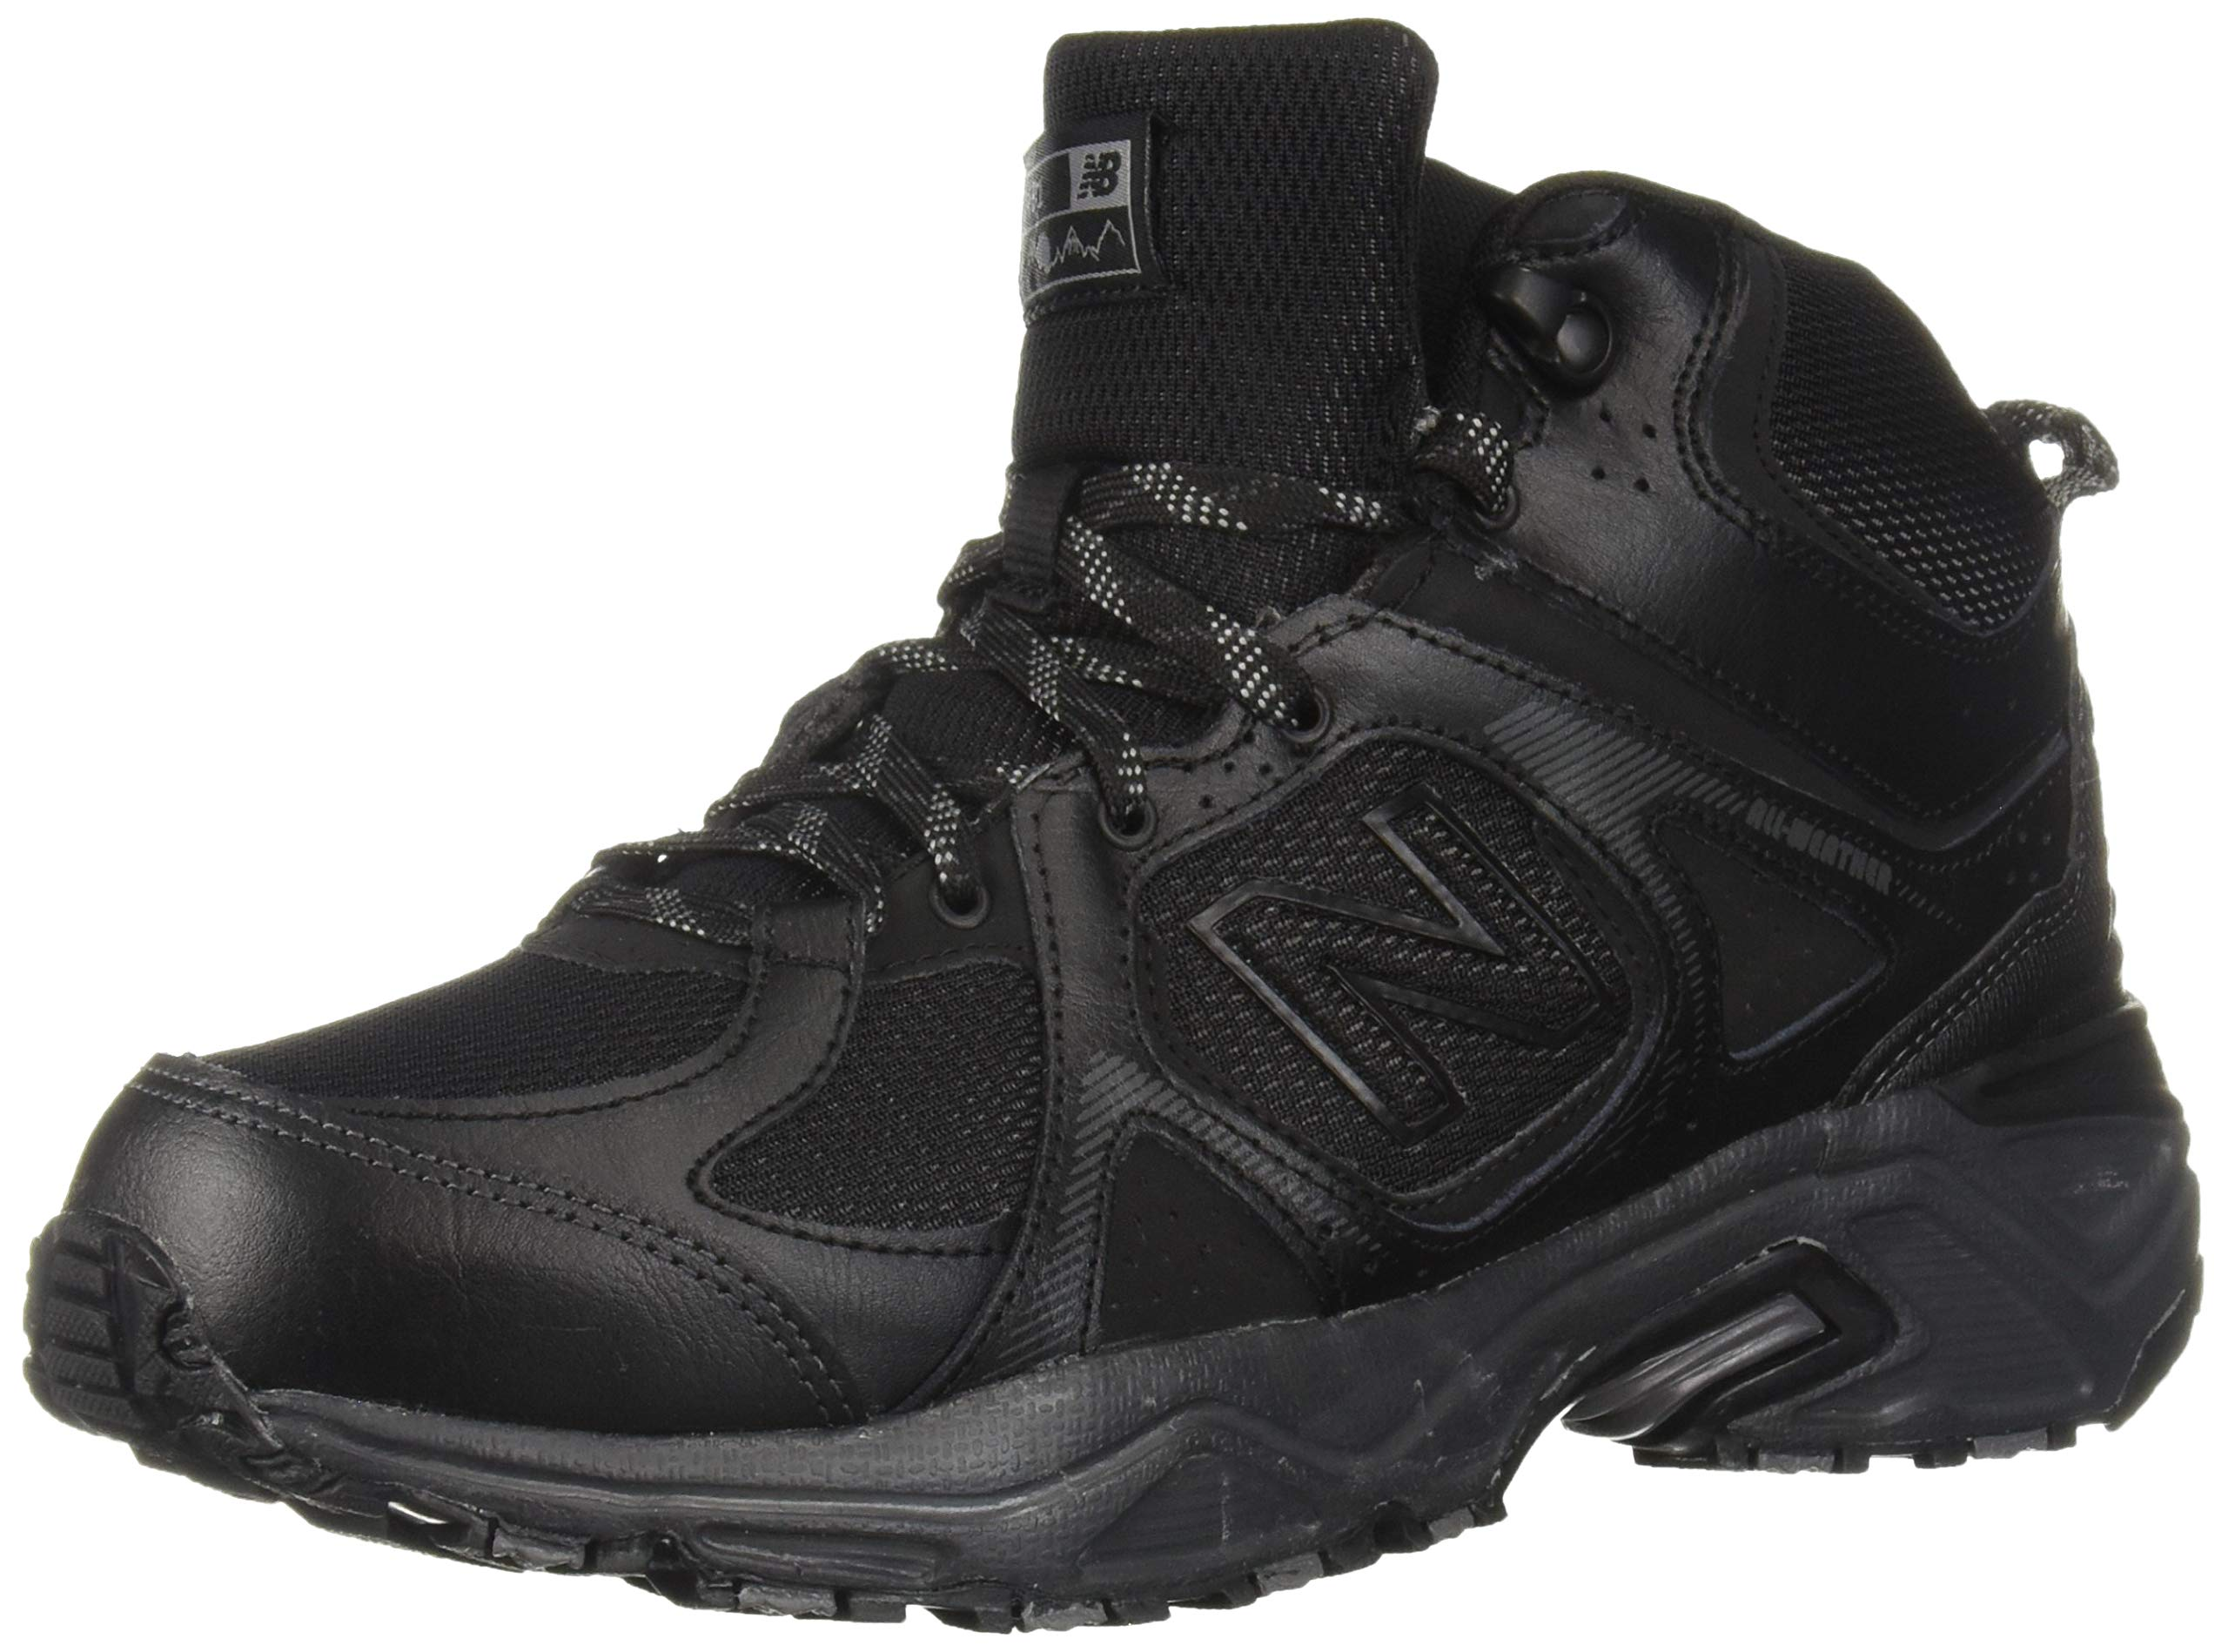 New Balance Men's 481 V3 Cushioning Trail Running Shoe, Black/Magnet, 8.5 D US by New Balance (Image #1)